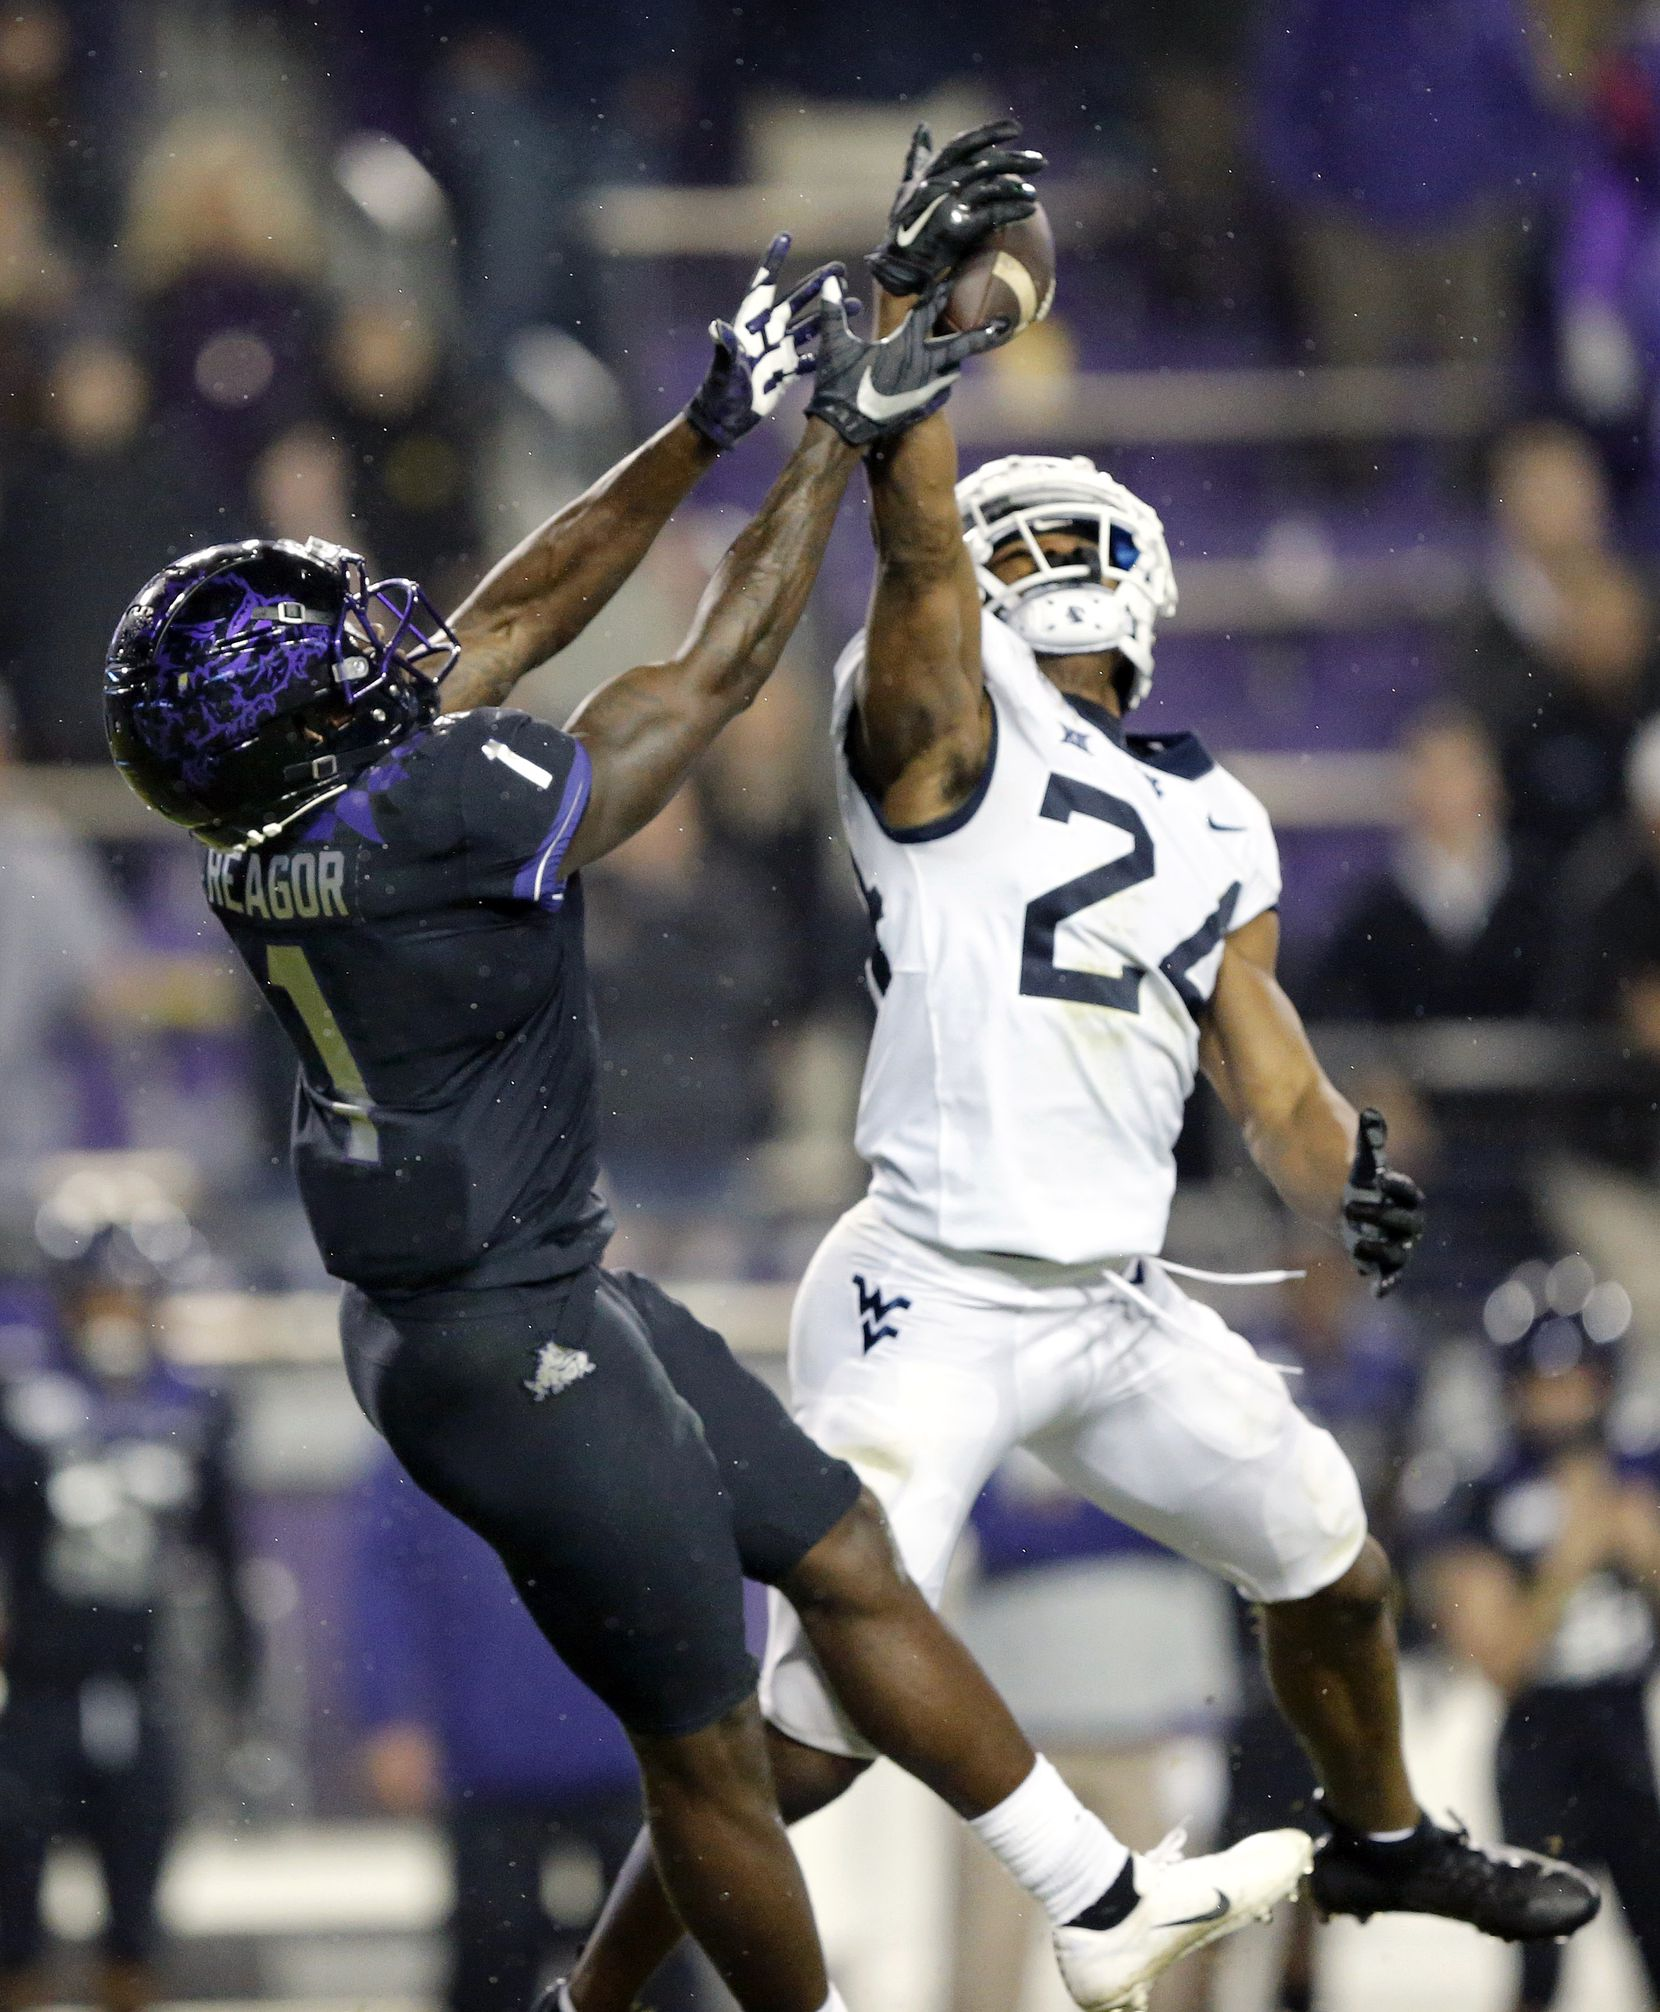 West Virginia Mountaineers cornerback Hakeem Bailey (24) swats away a long fourth quarter pass intended for TCU Horned Frogs wide receiver Jalen Reagor (1) at Amon G. Carter Stadium in Fort Worth, Friday, November 29, 2019. The Horned Frogs lost, 20-17.